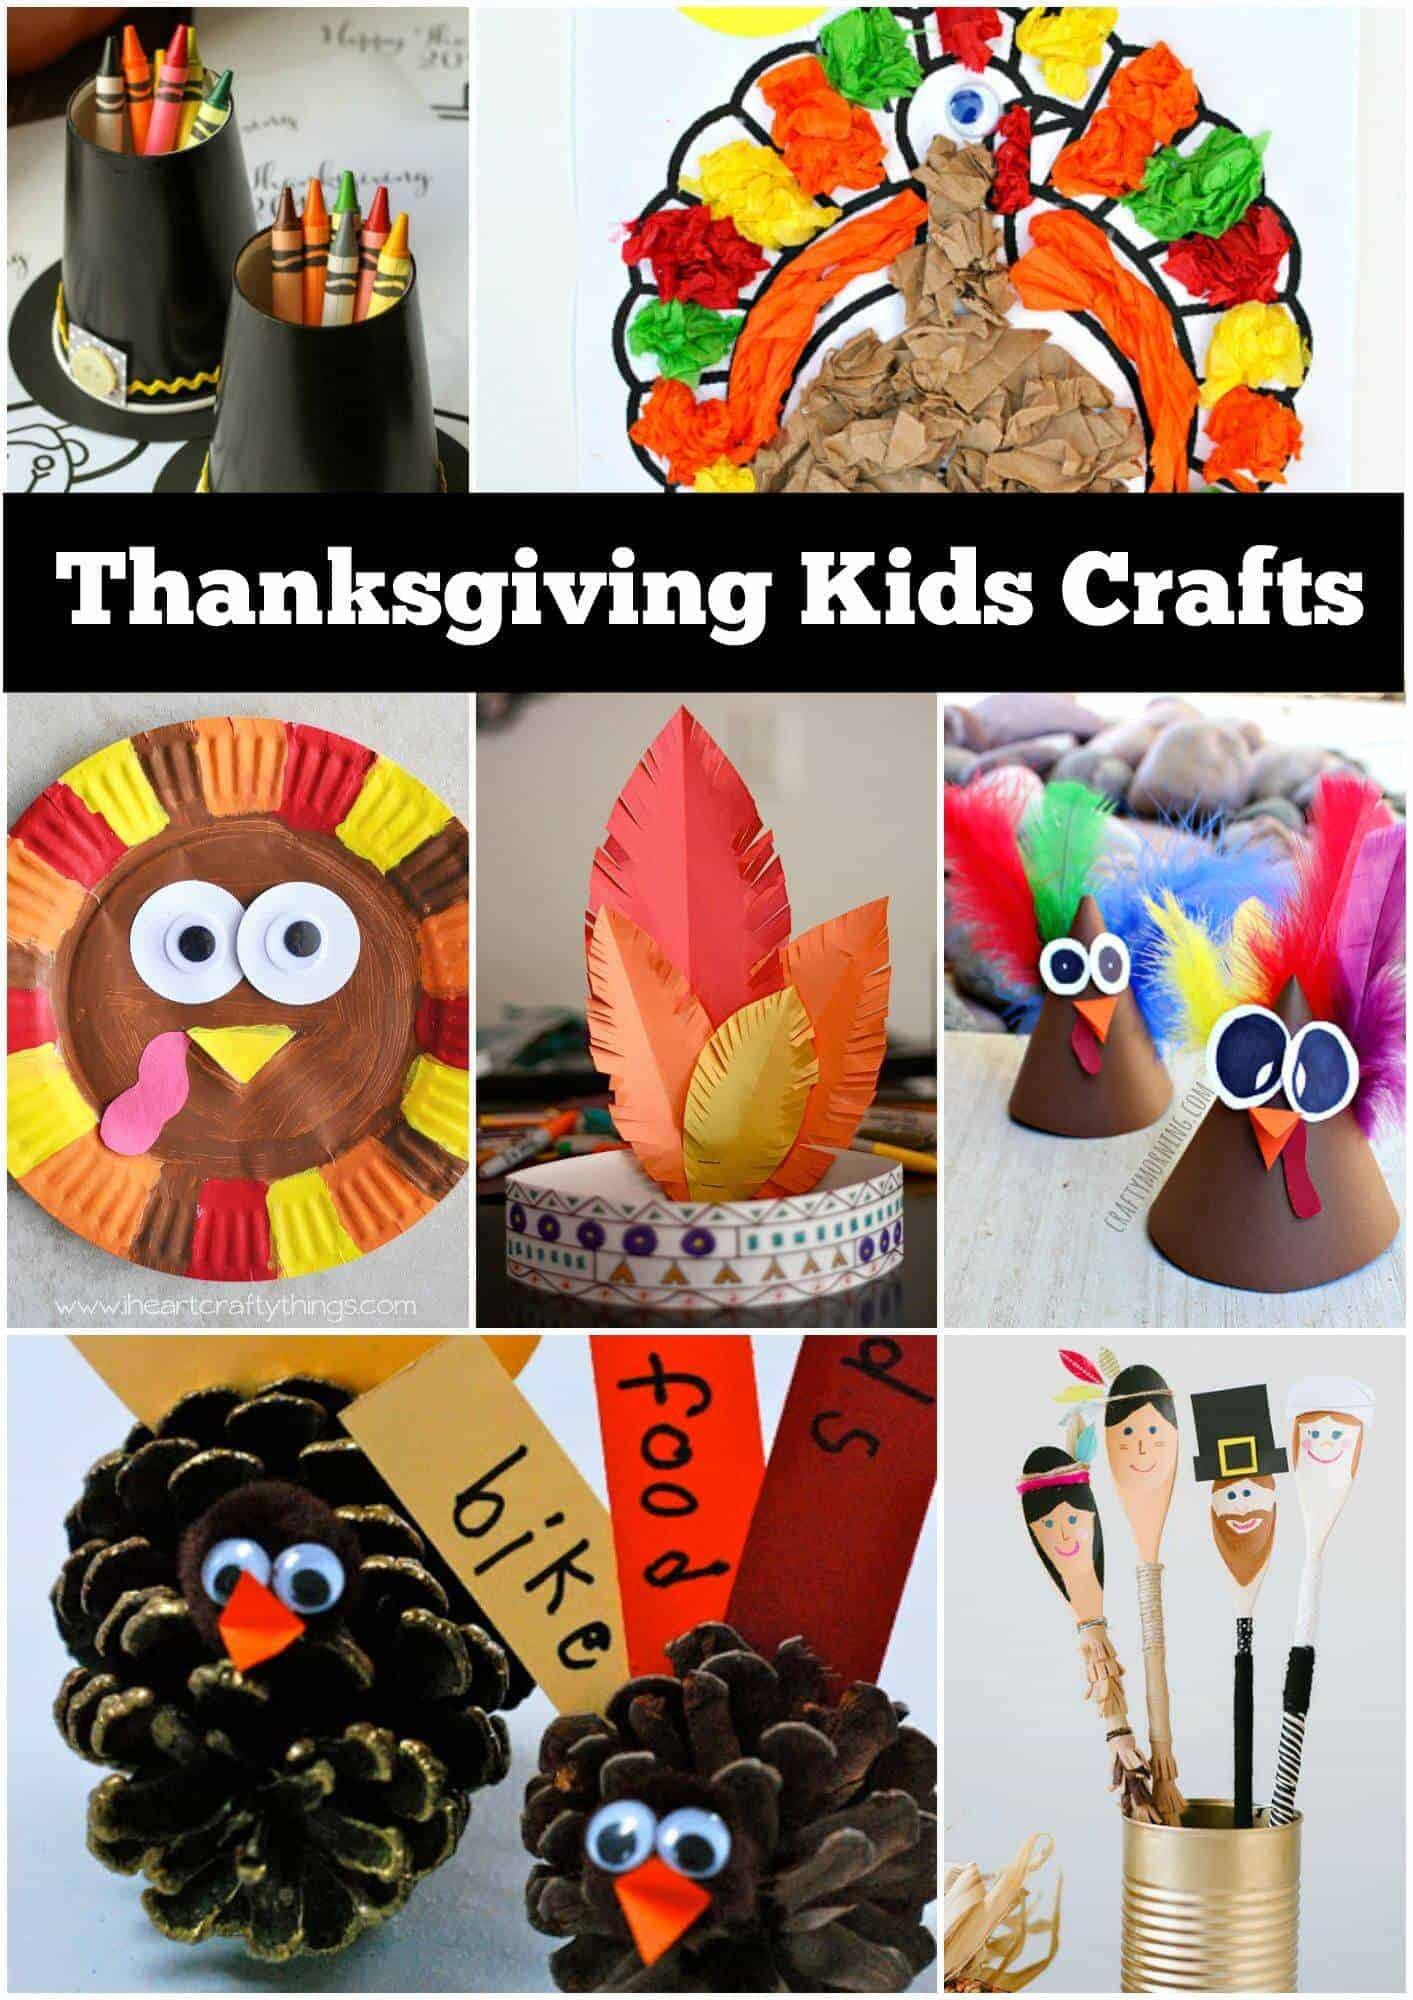 Thanksgiving Turkey Craft  12 Thanksgiving Craft Ideas for kids Page 2 of 2